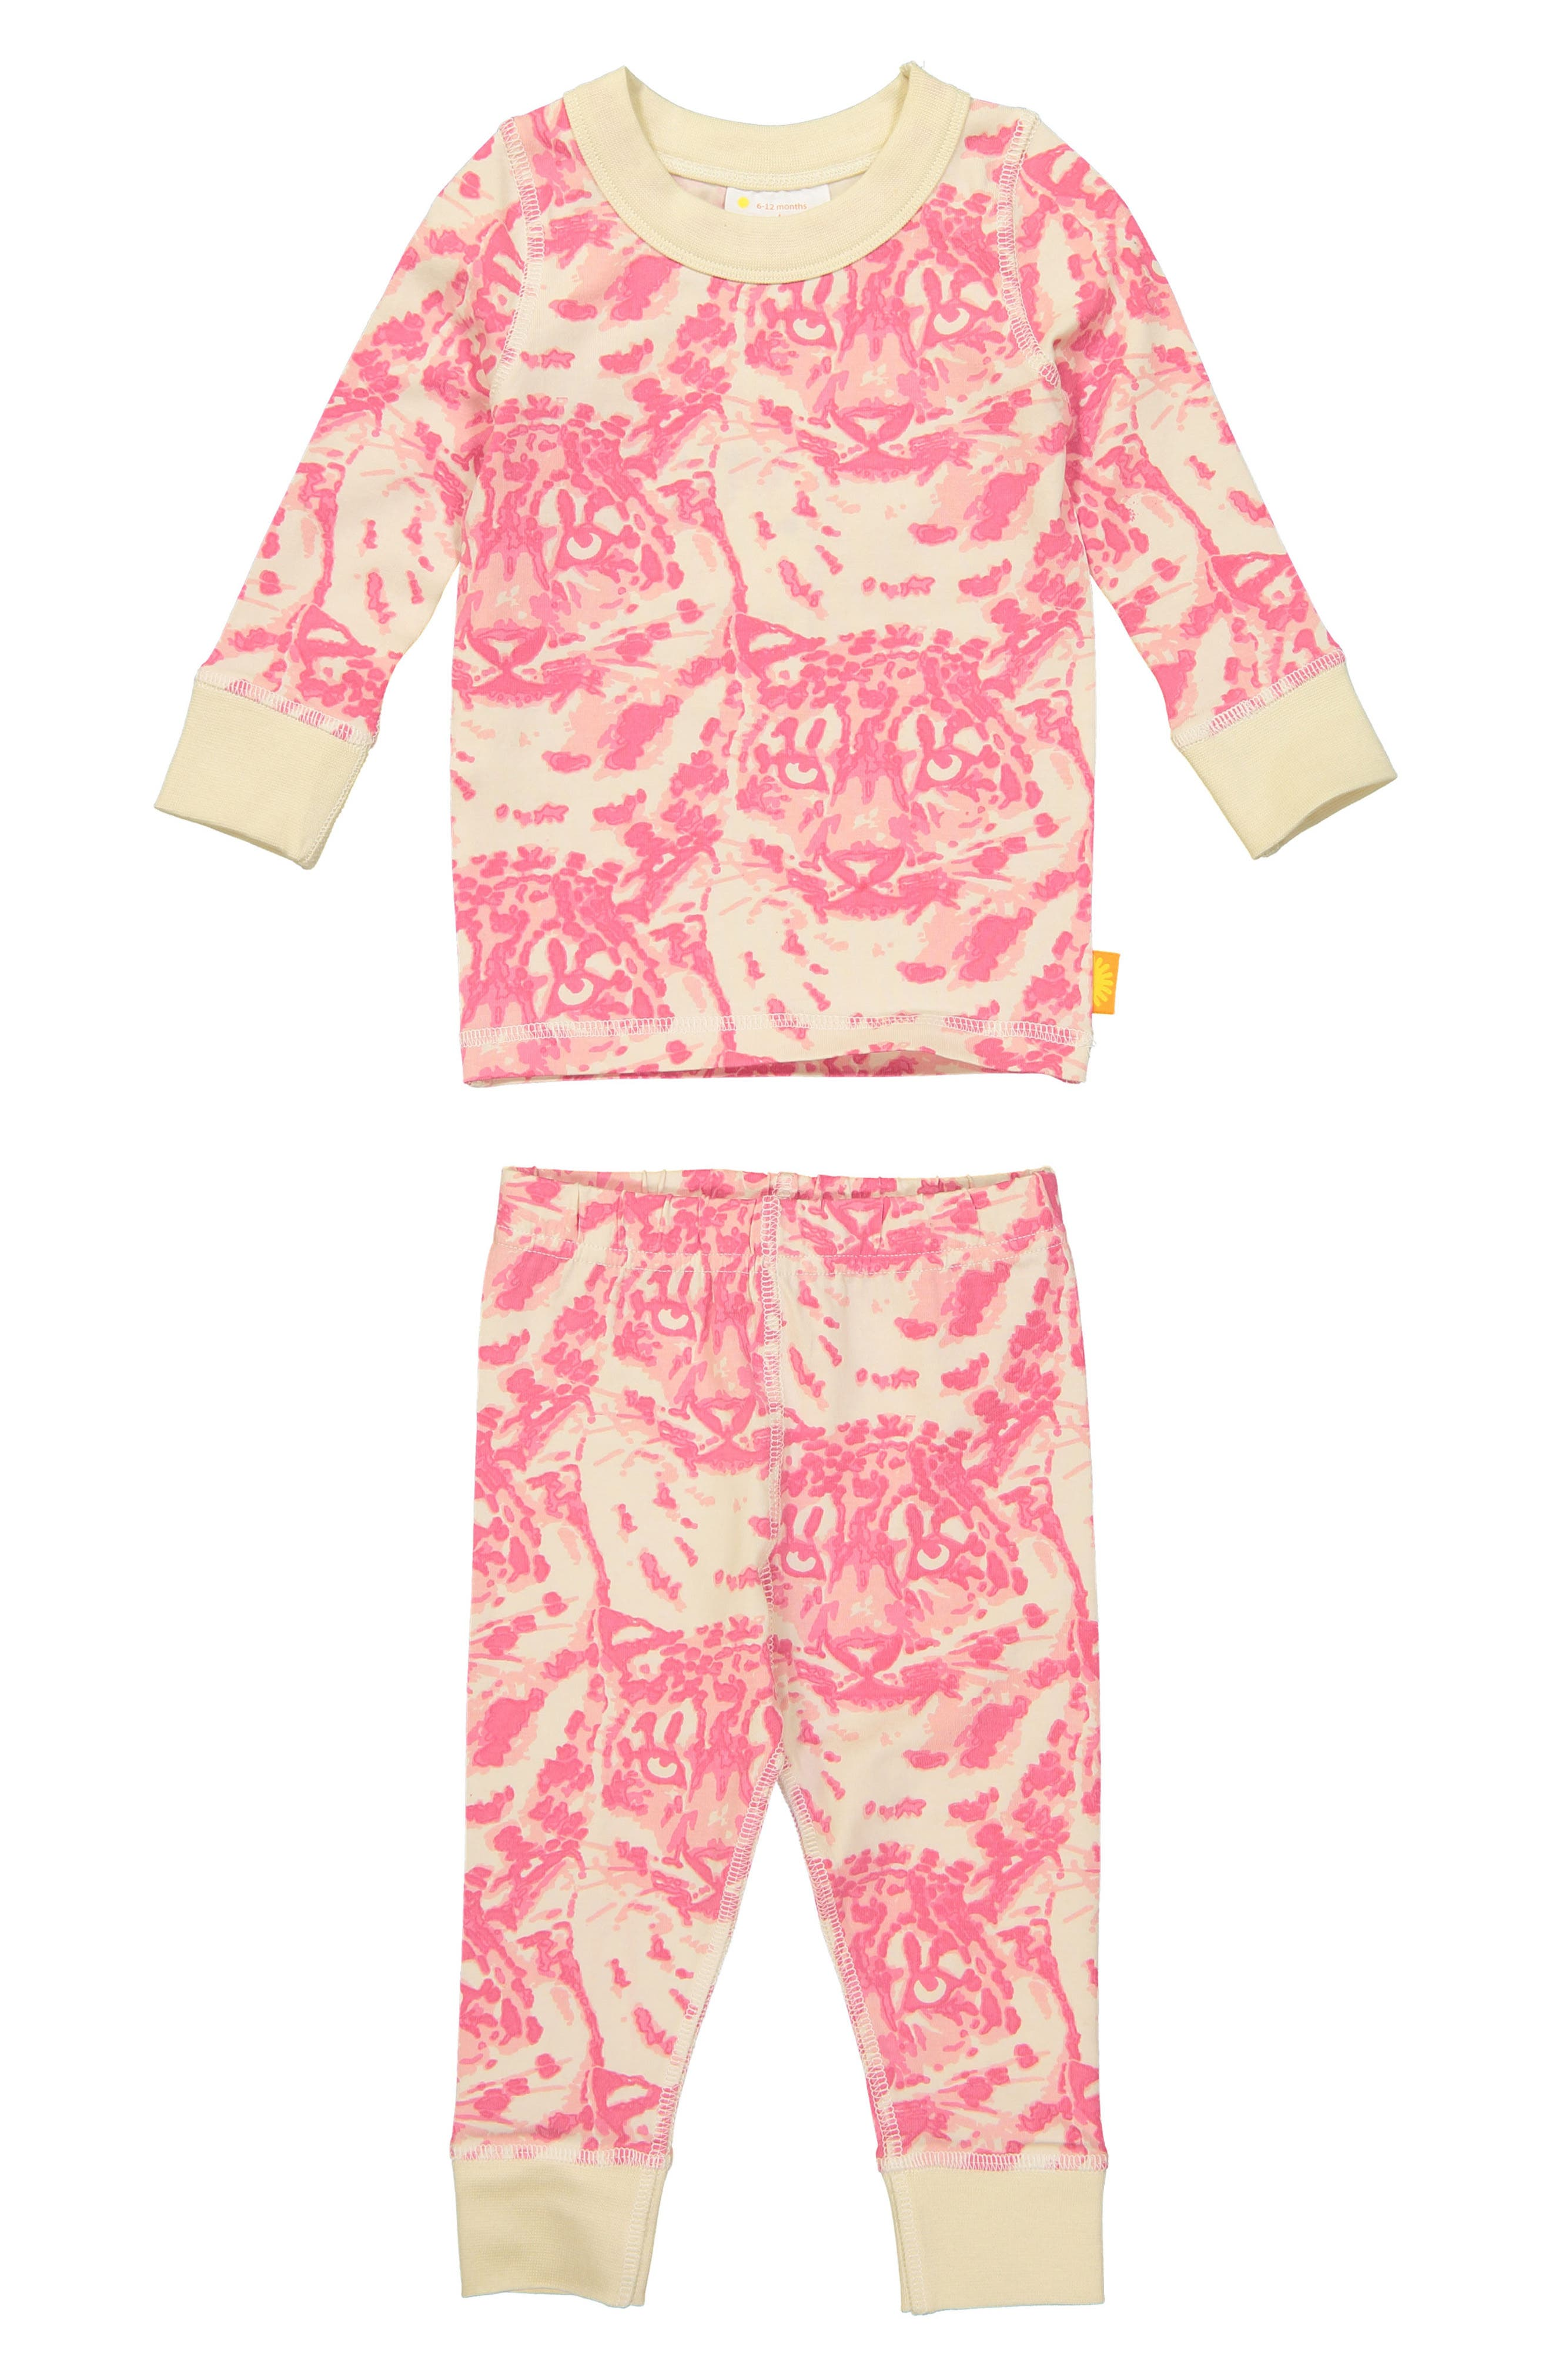 Cat Camo Organic Cotton Fitted Two-Piece Pajamas,                             Main thumbnail 1, color,                             PINK